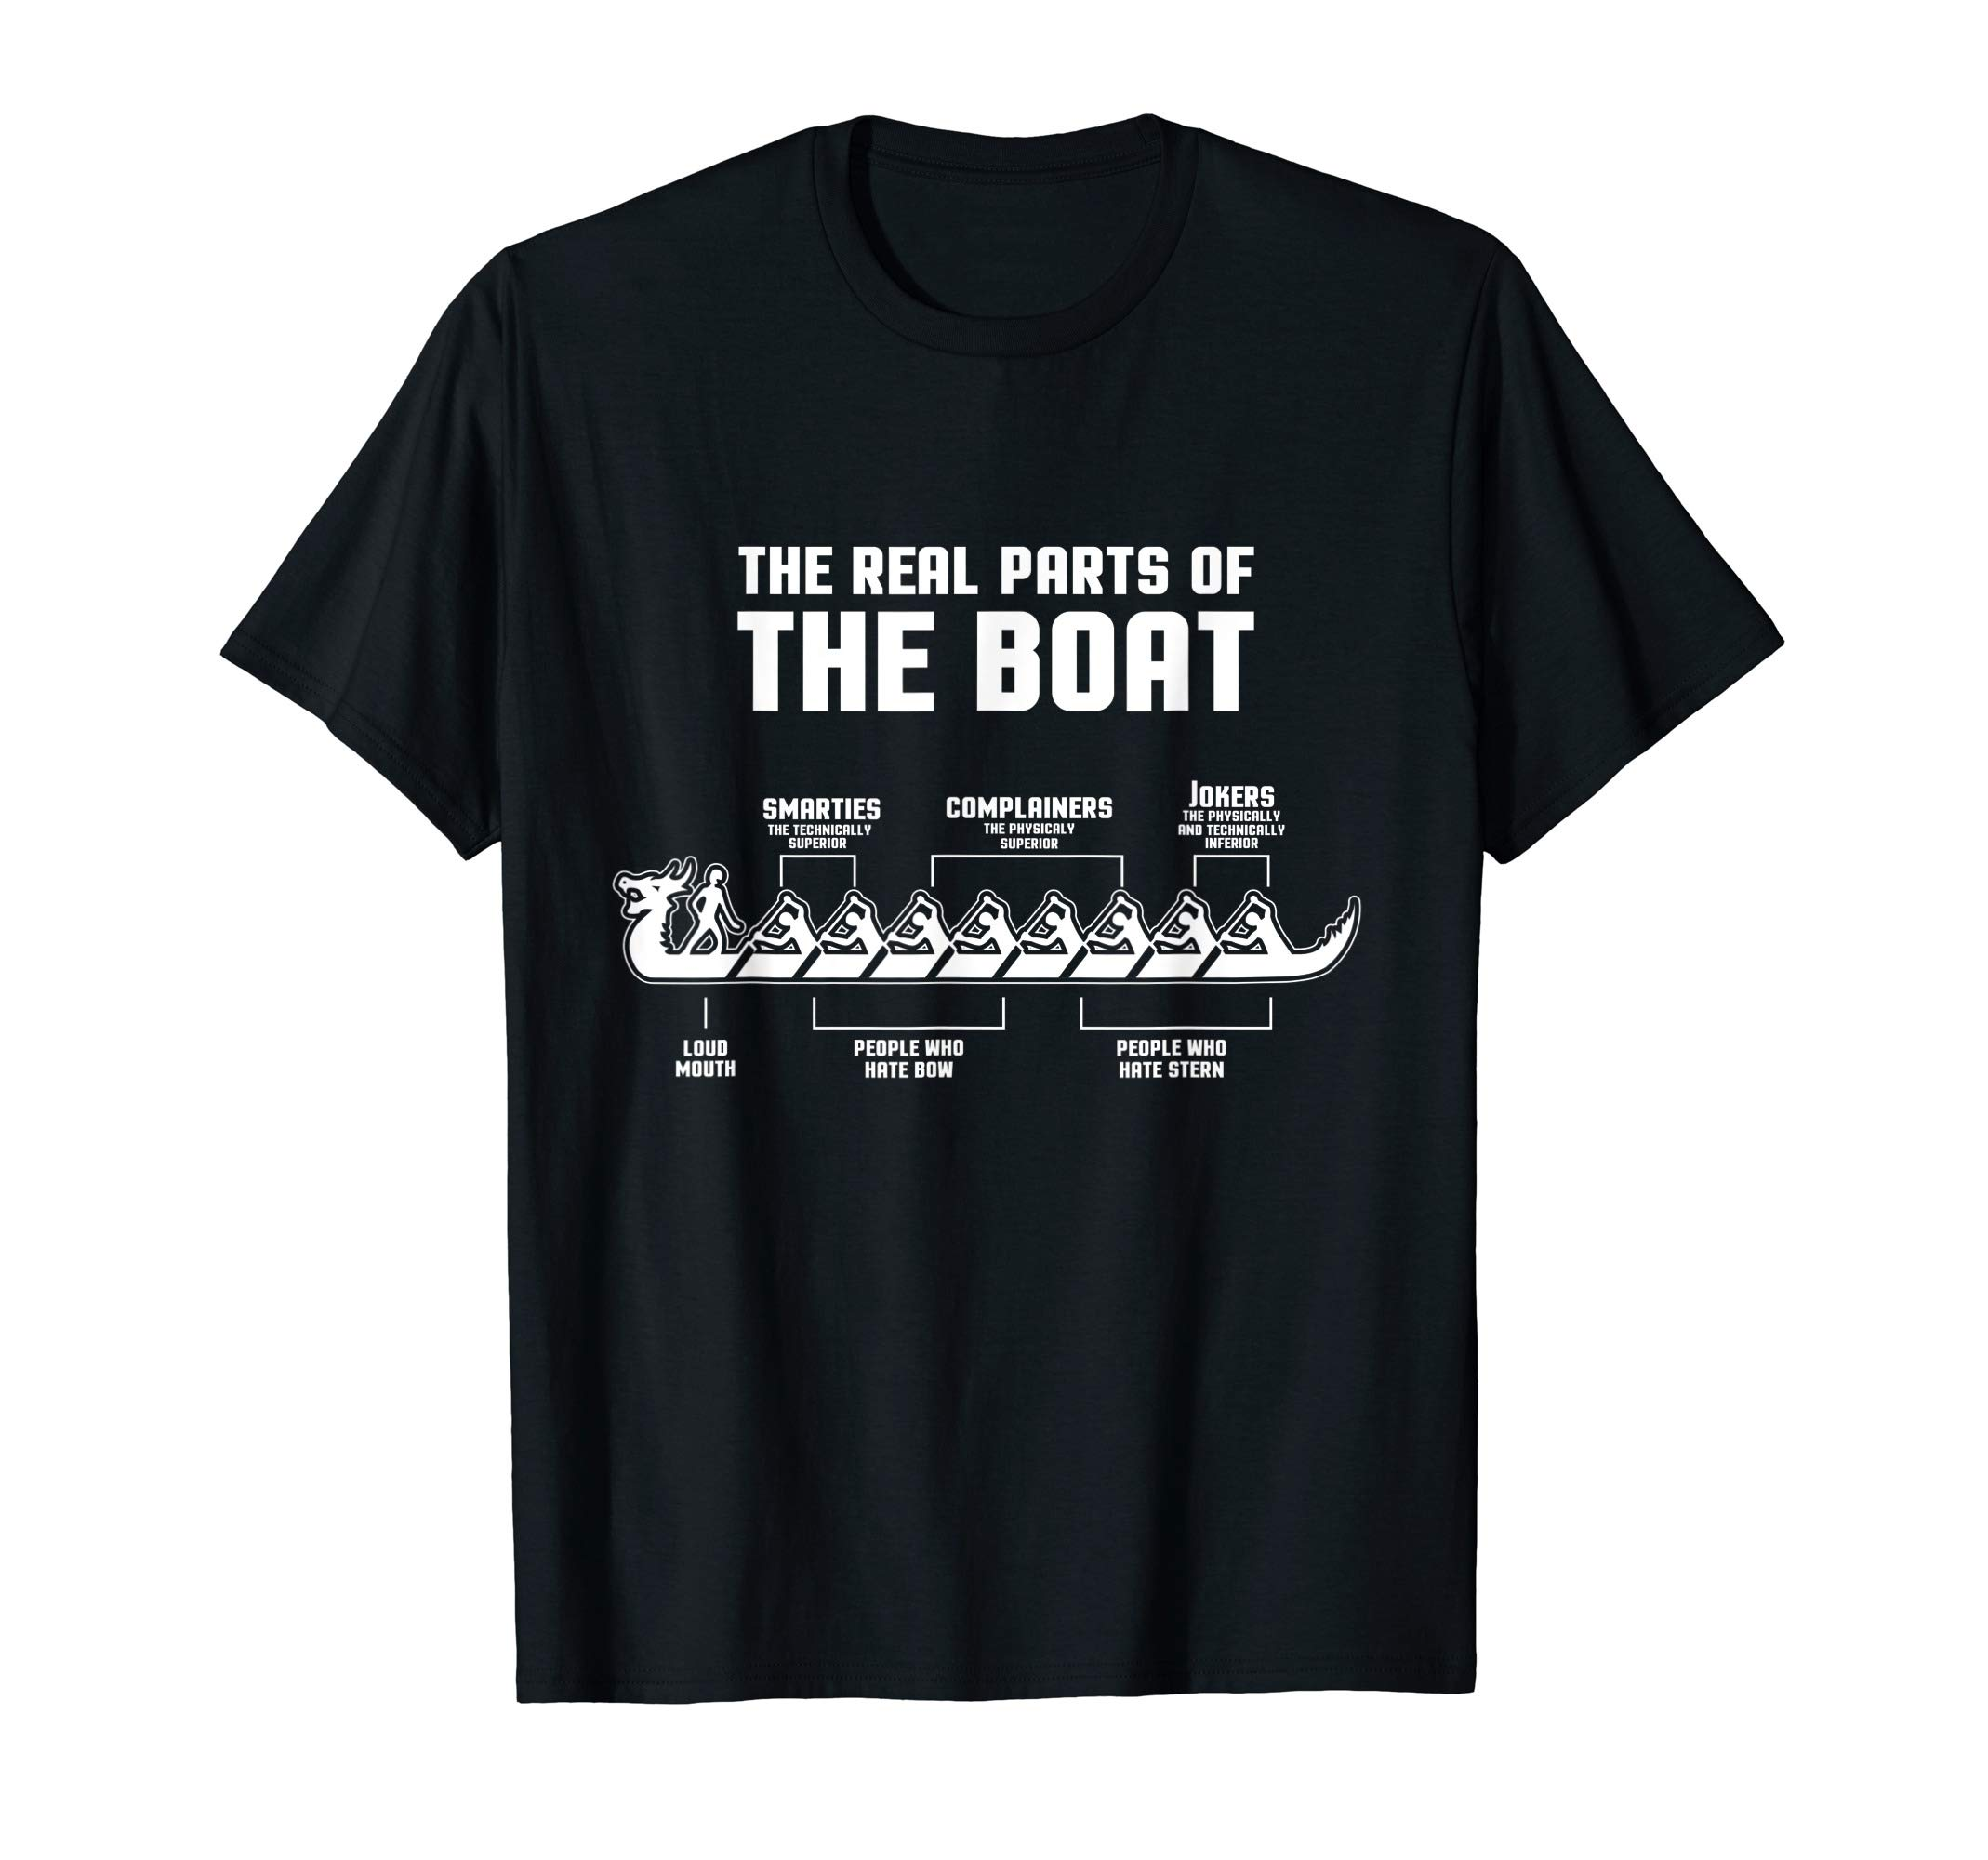 Rowboat Funny Team T Shirt I Rowing and Dragon Boat Gift by Dragon Boat Paddle Tee Shirts and Gift